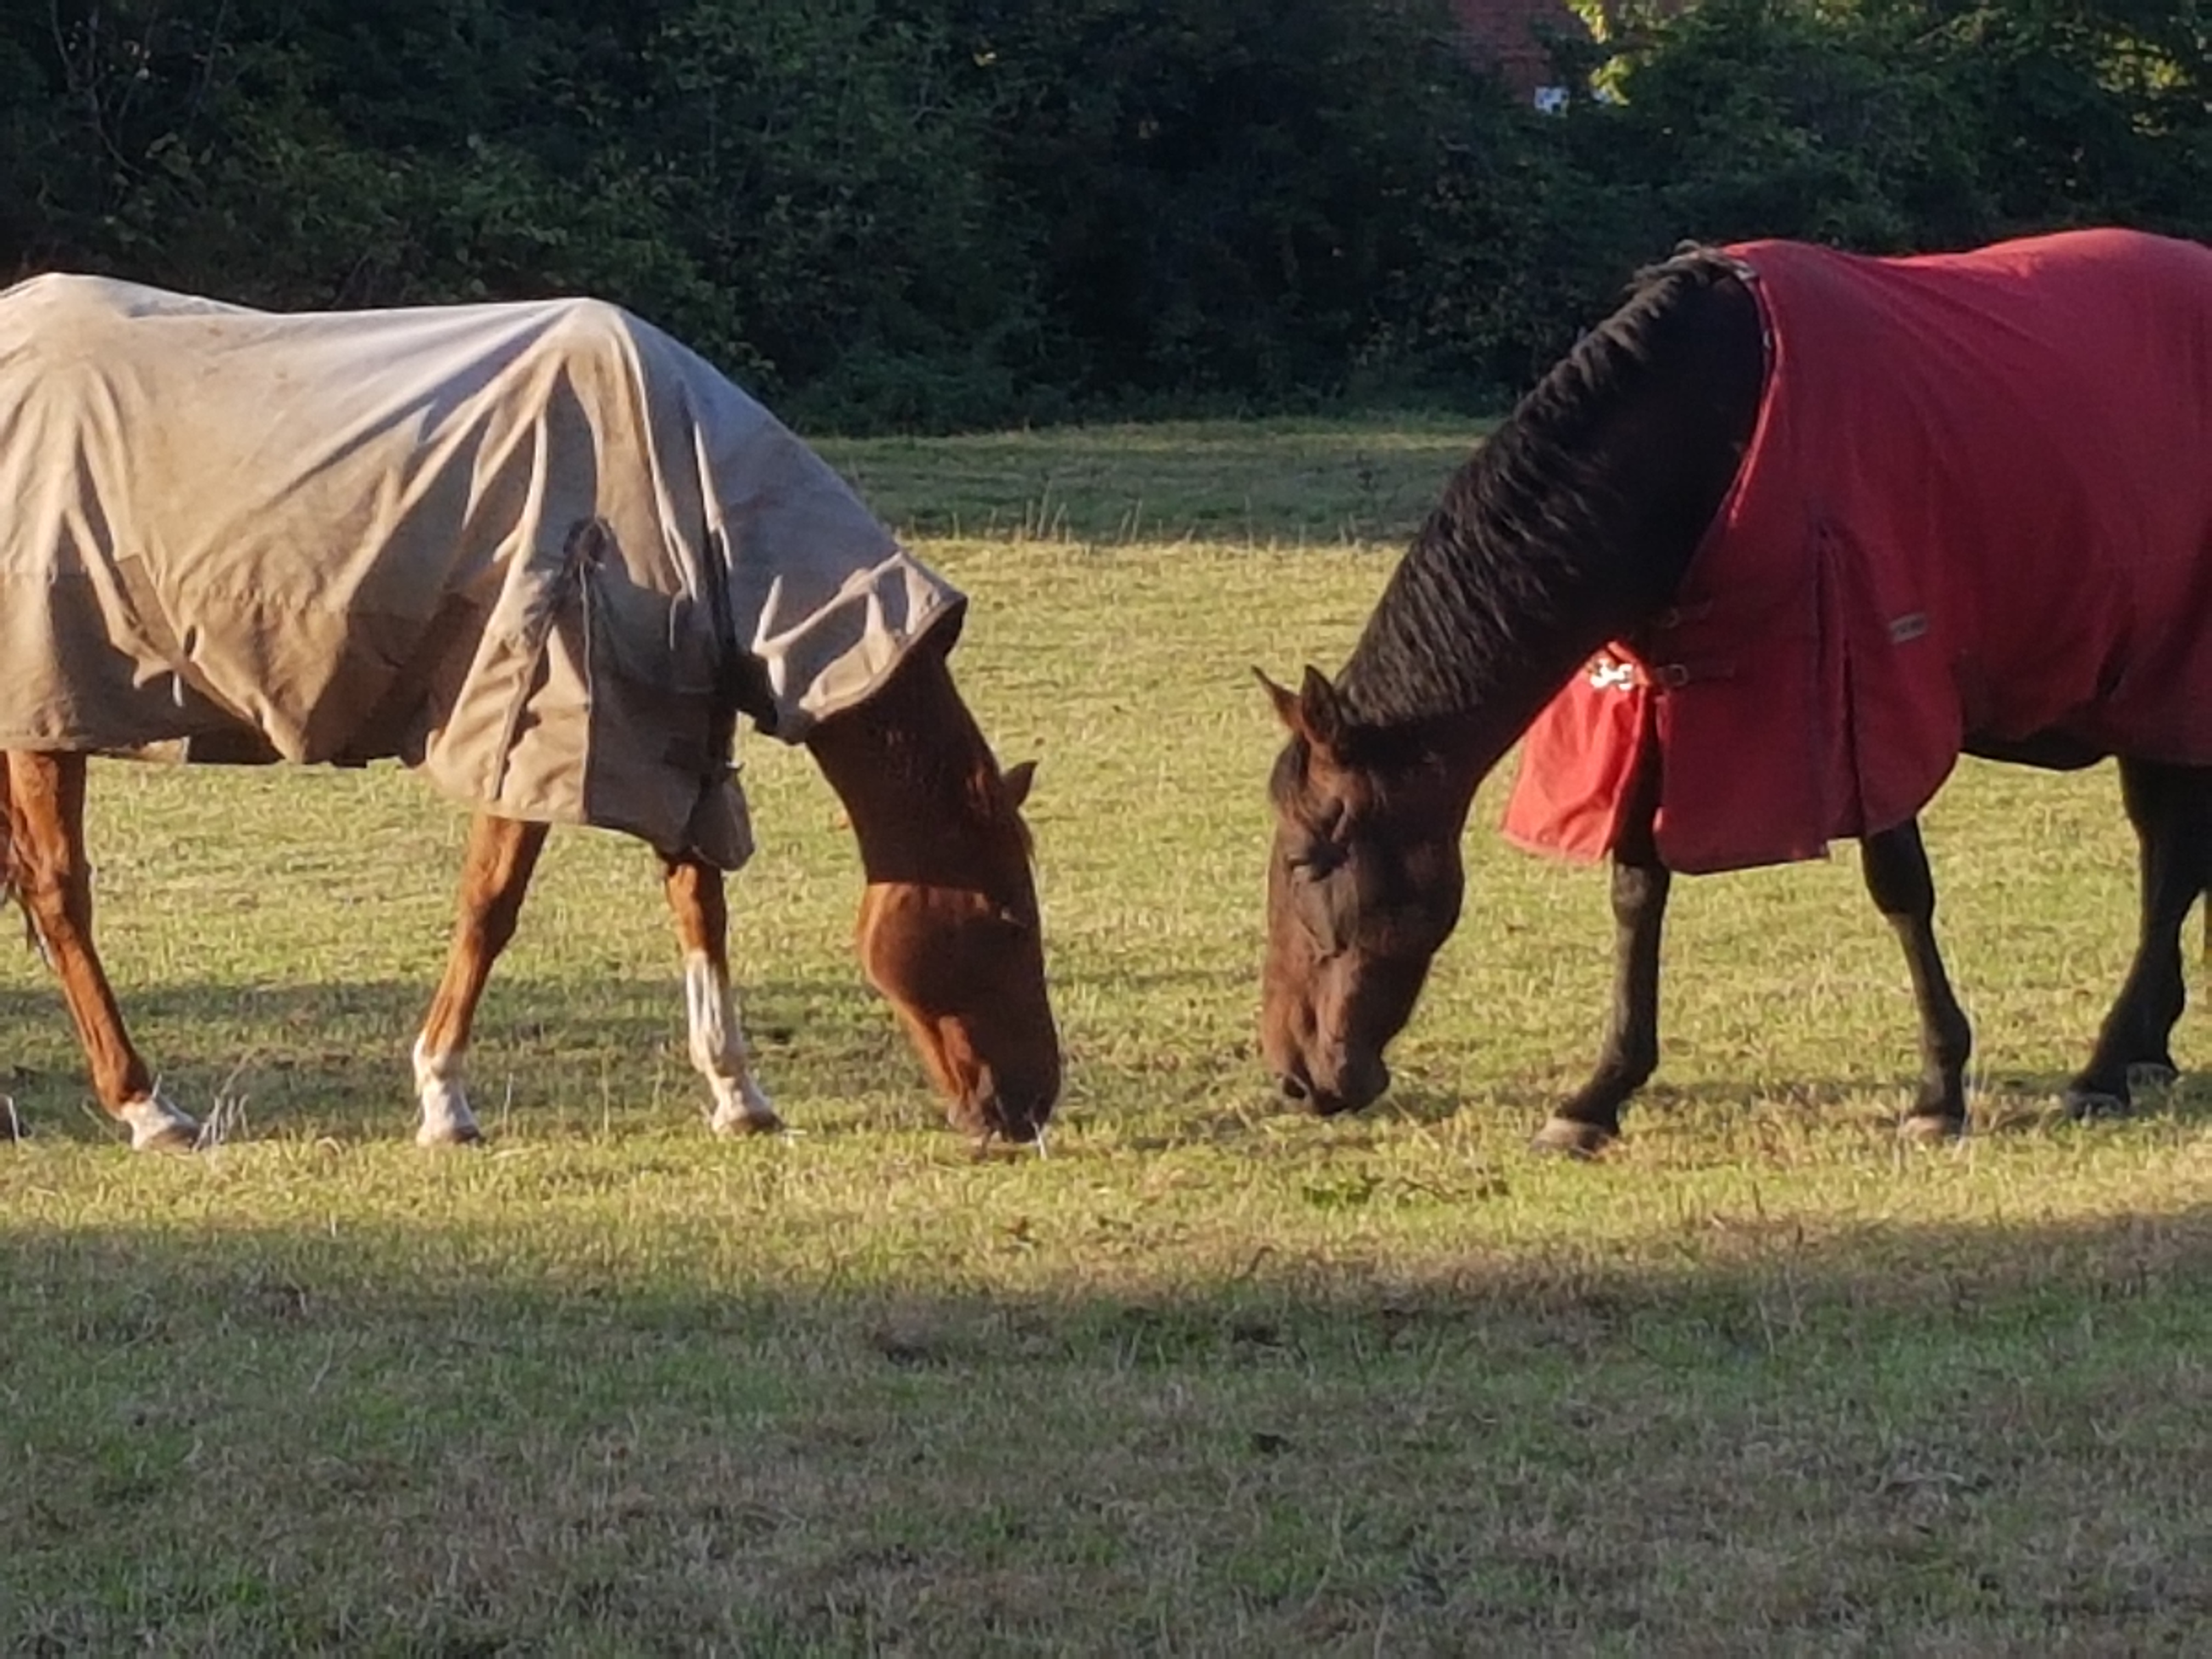 Two horses in coats grassing at sunset